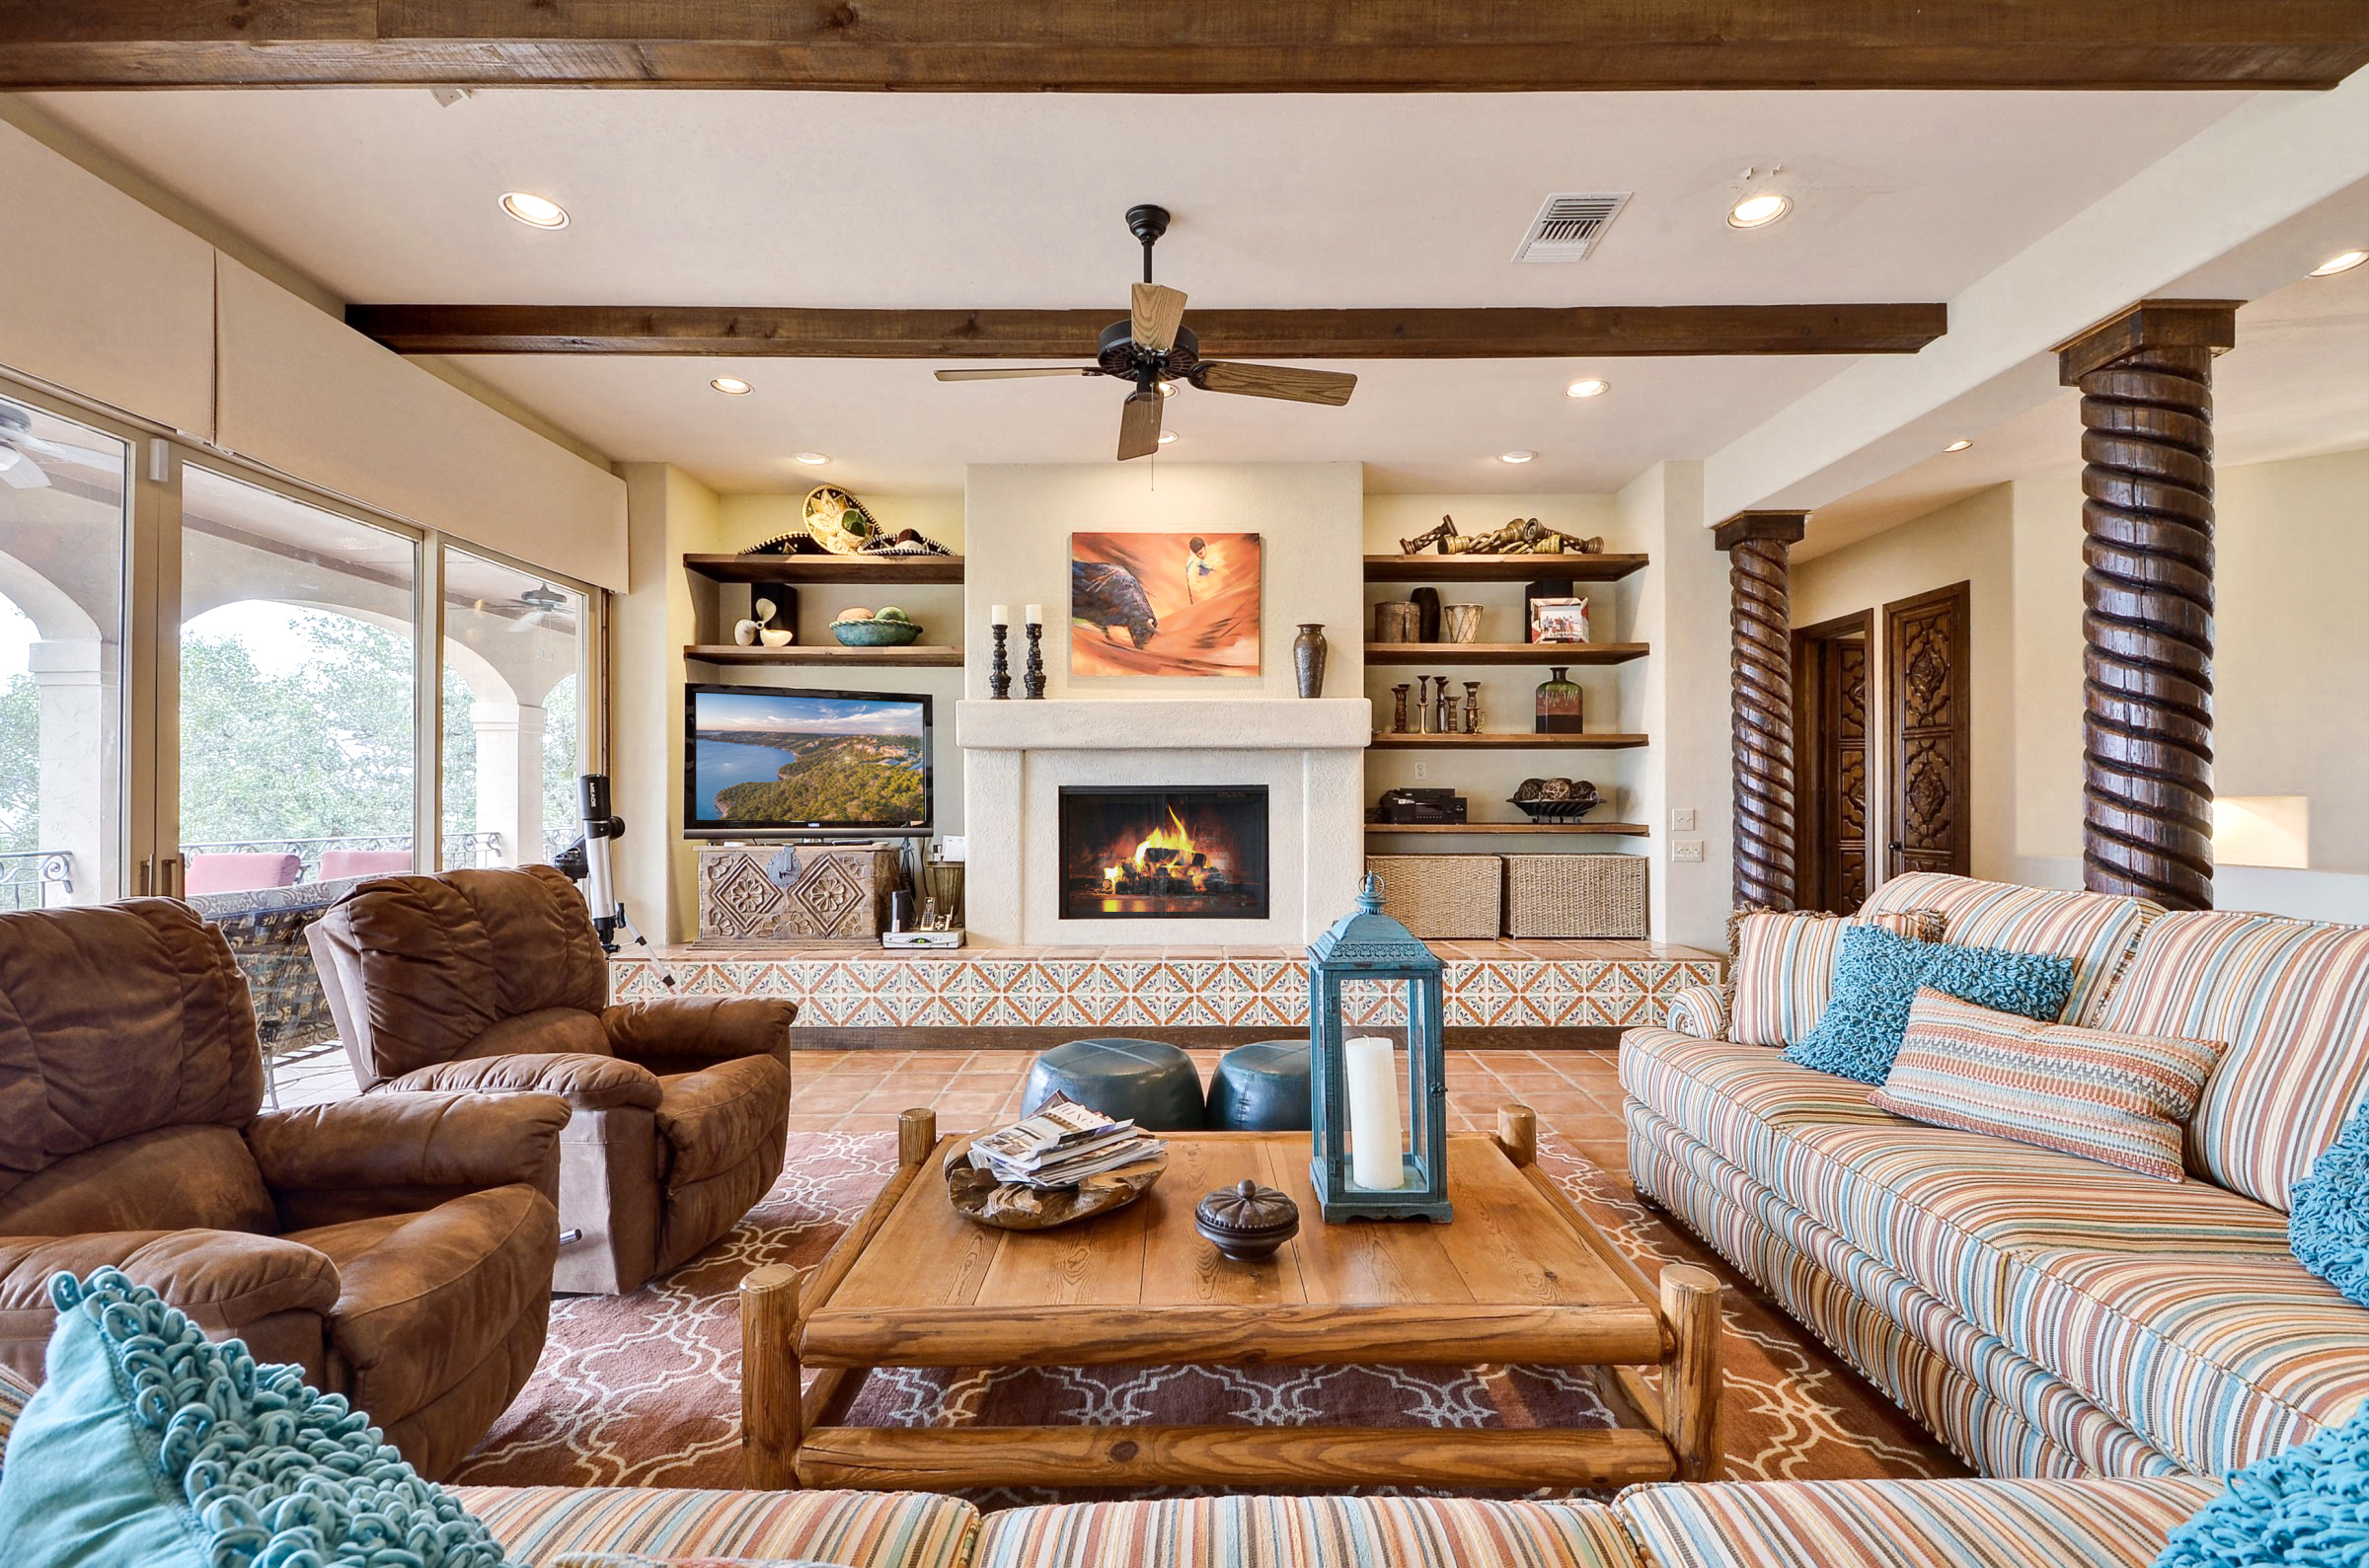 Lakeway TX Vacation Rental Welcome to Austin!